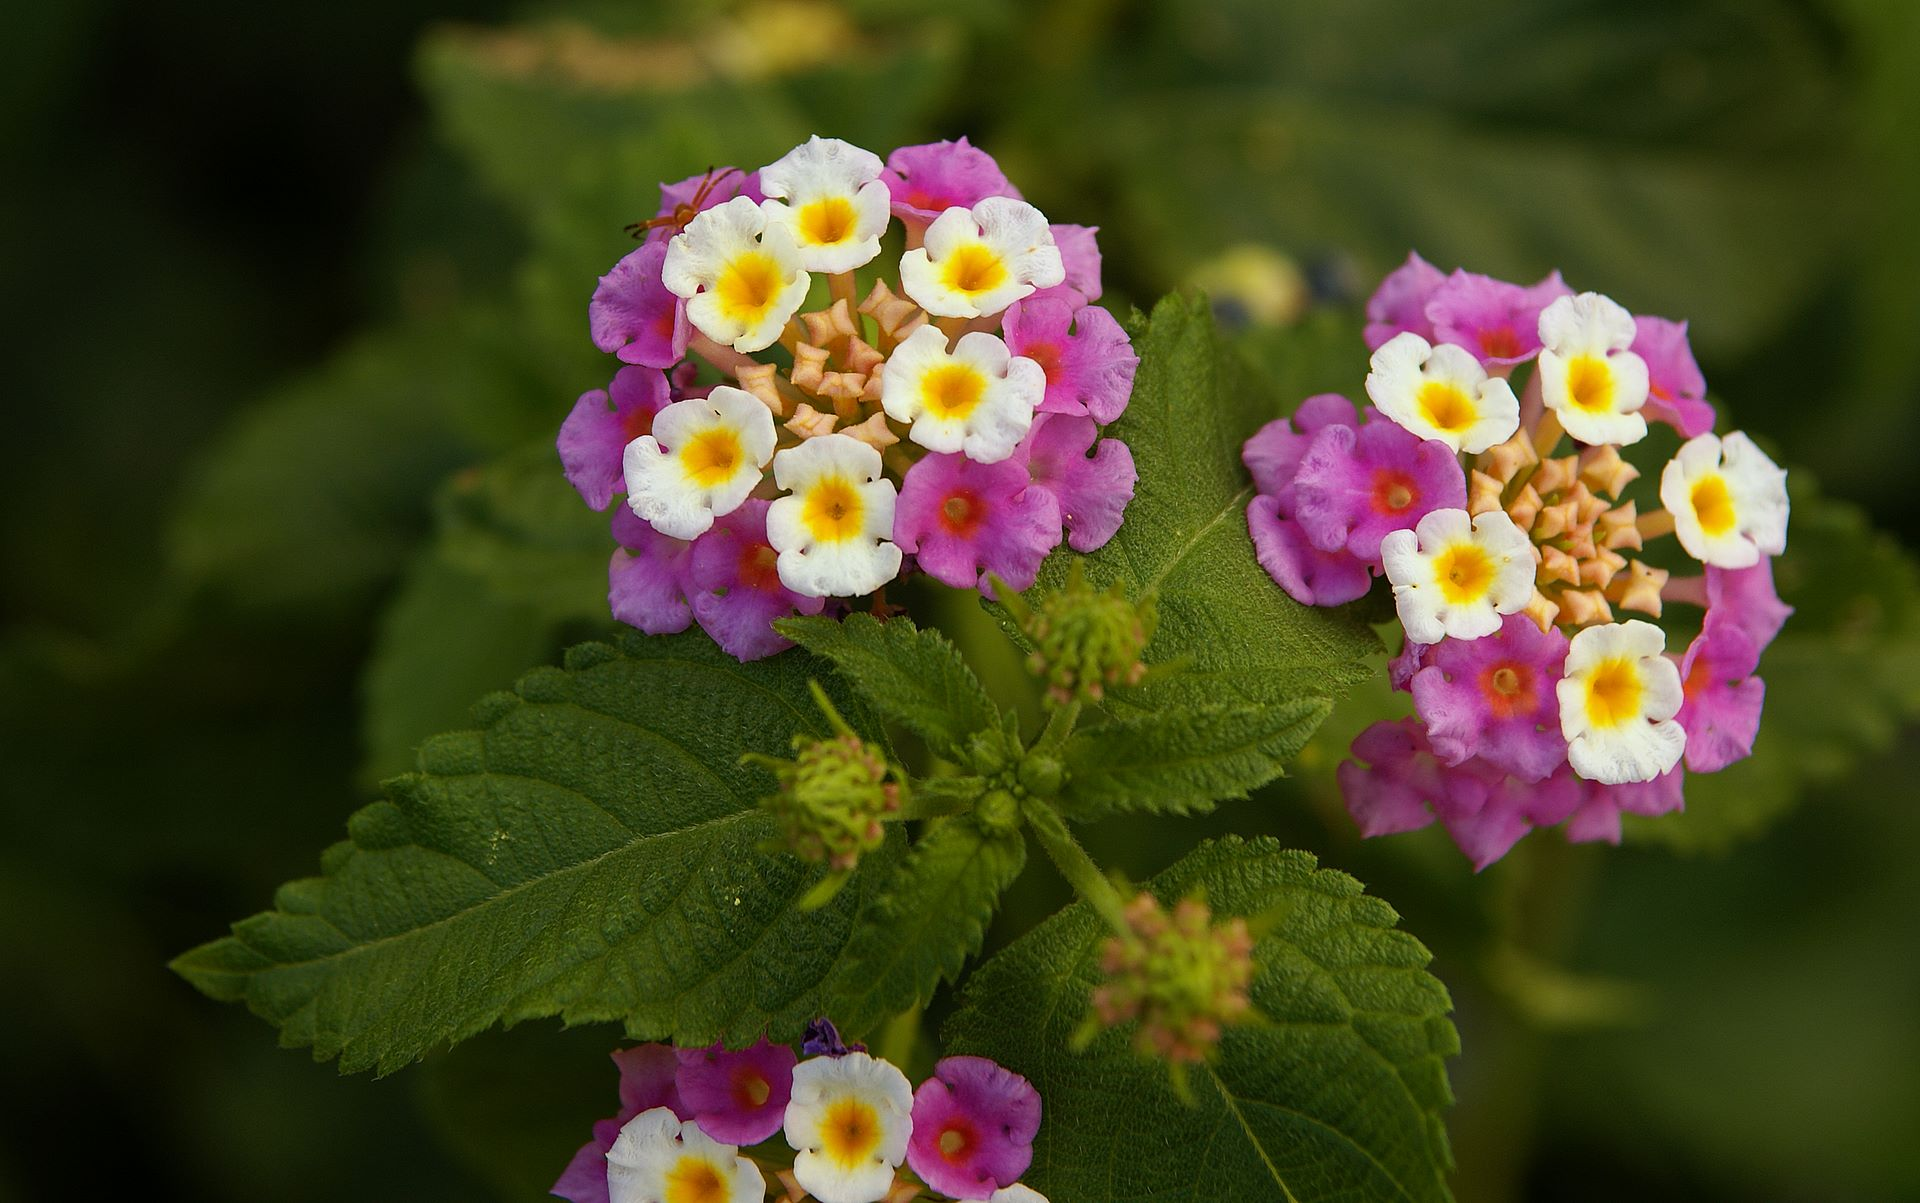 http://www.fabiovisentin.com/photography/photo/13/lantana-flowers-wallpaper-dsc01629.jpg